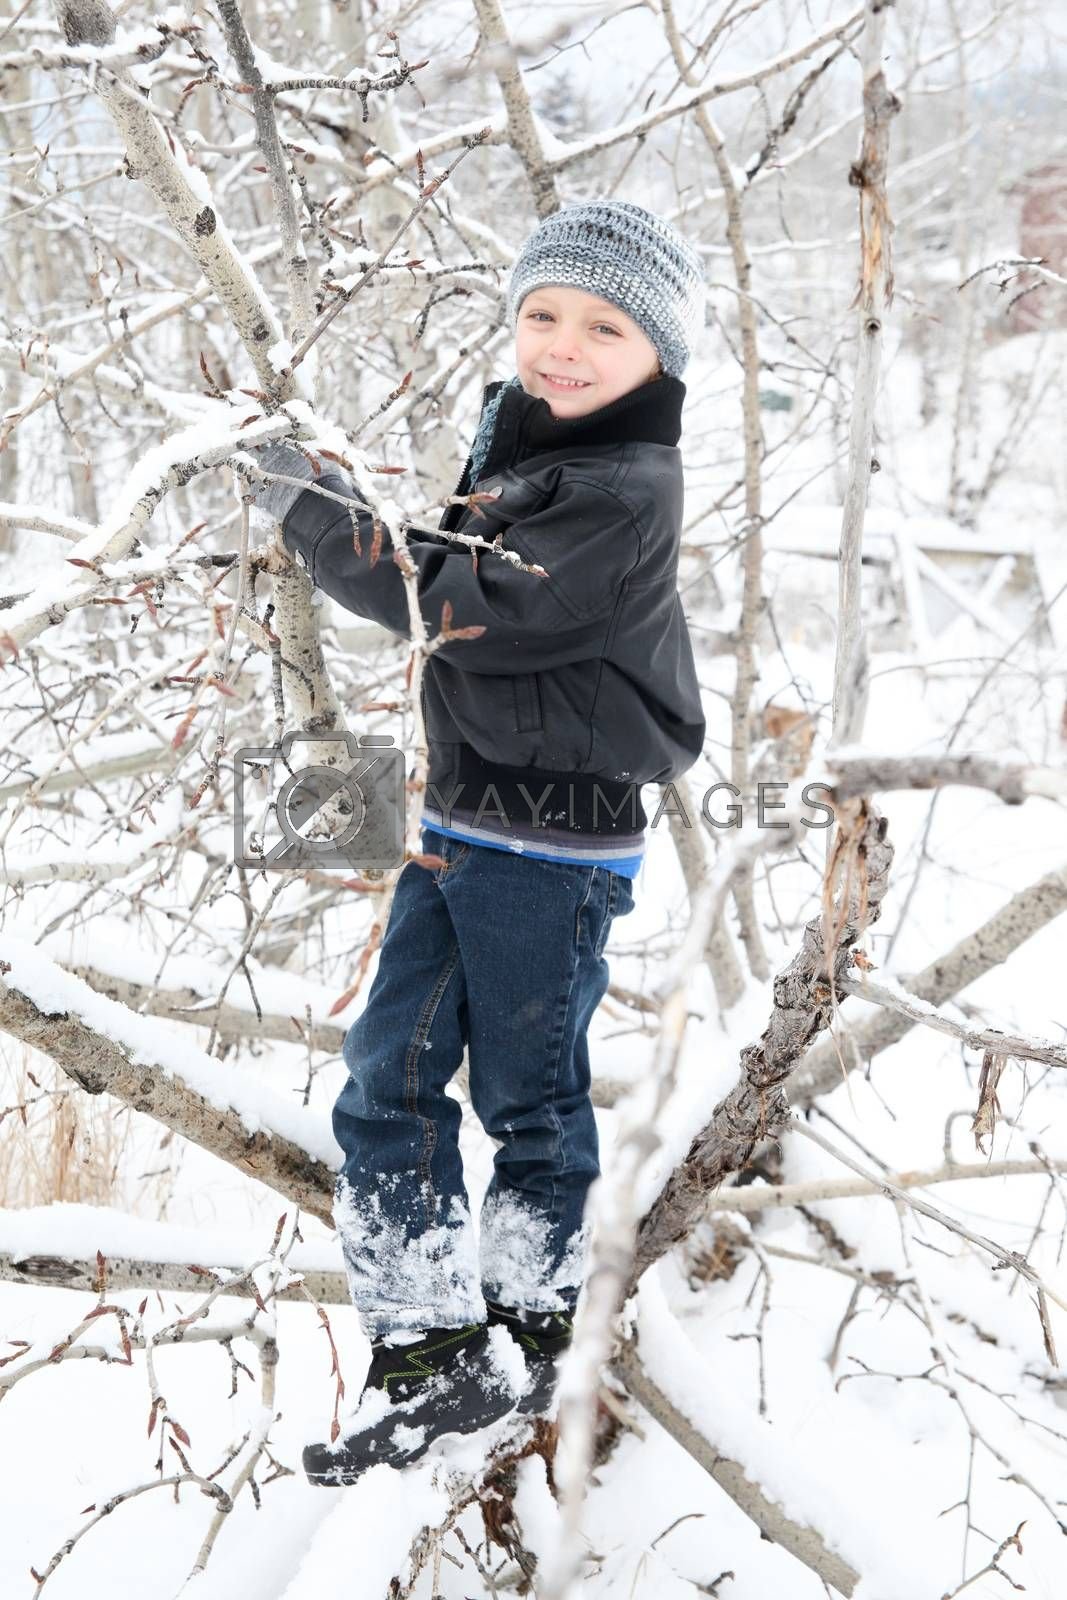 Young boy playing outside on a snowy day